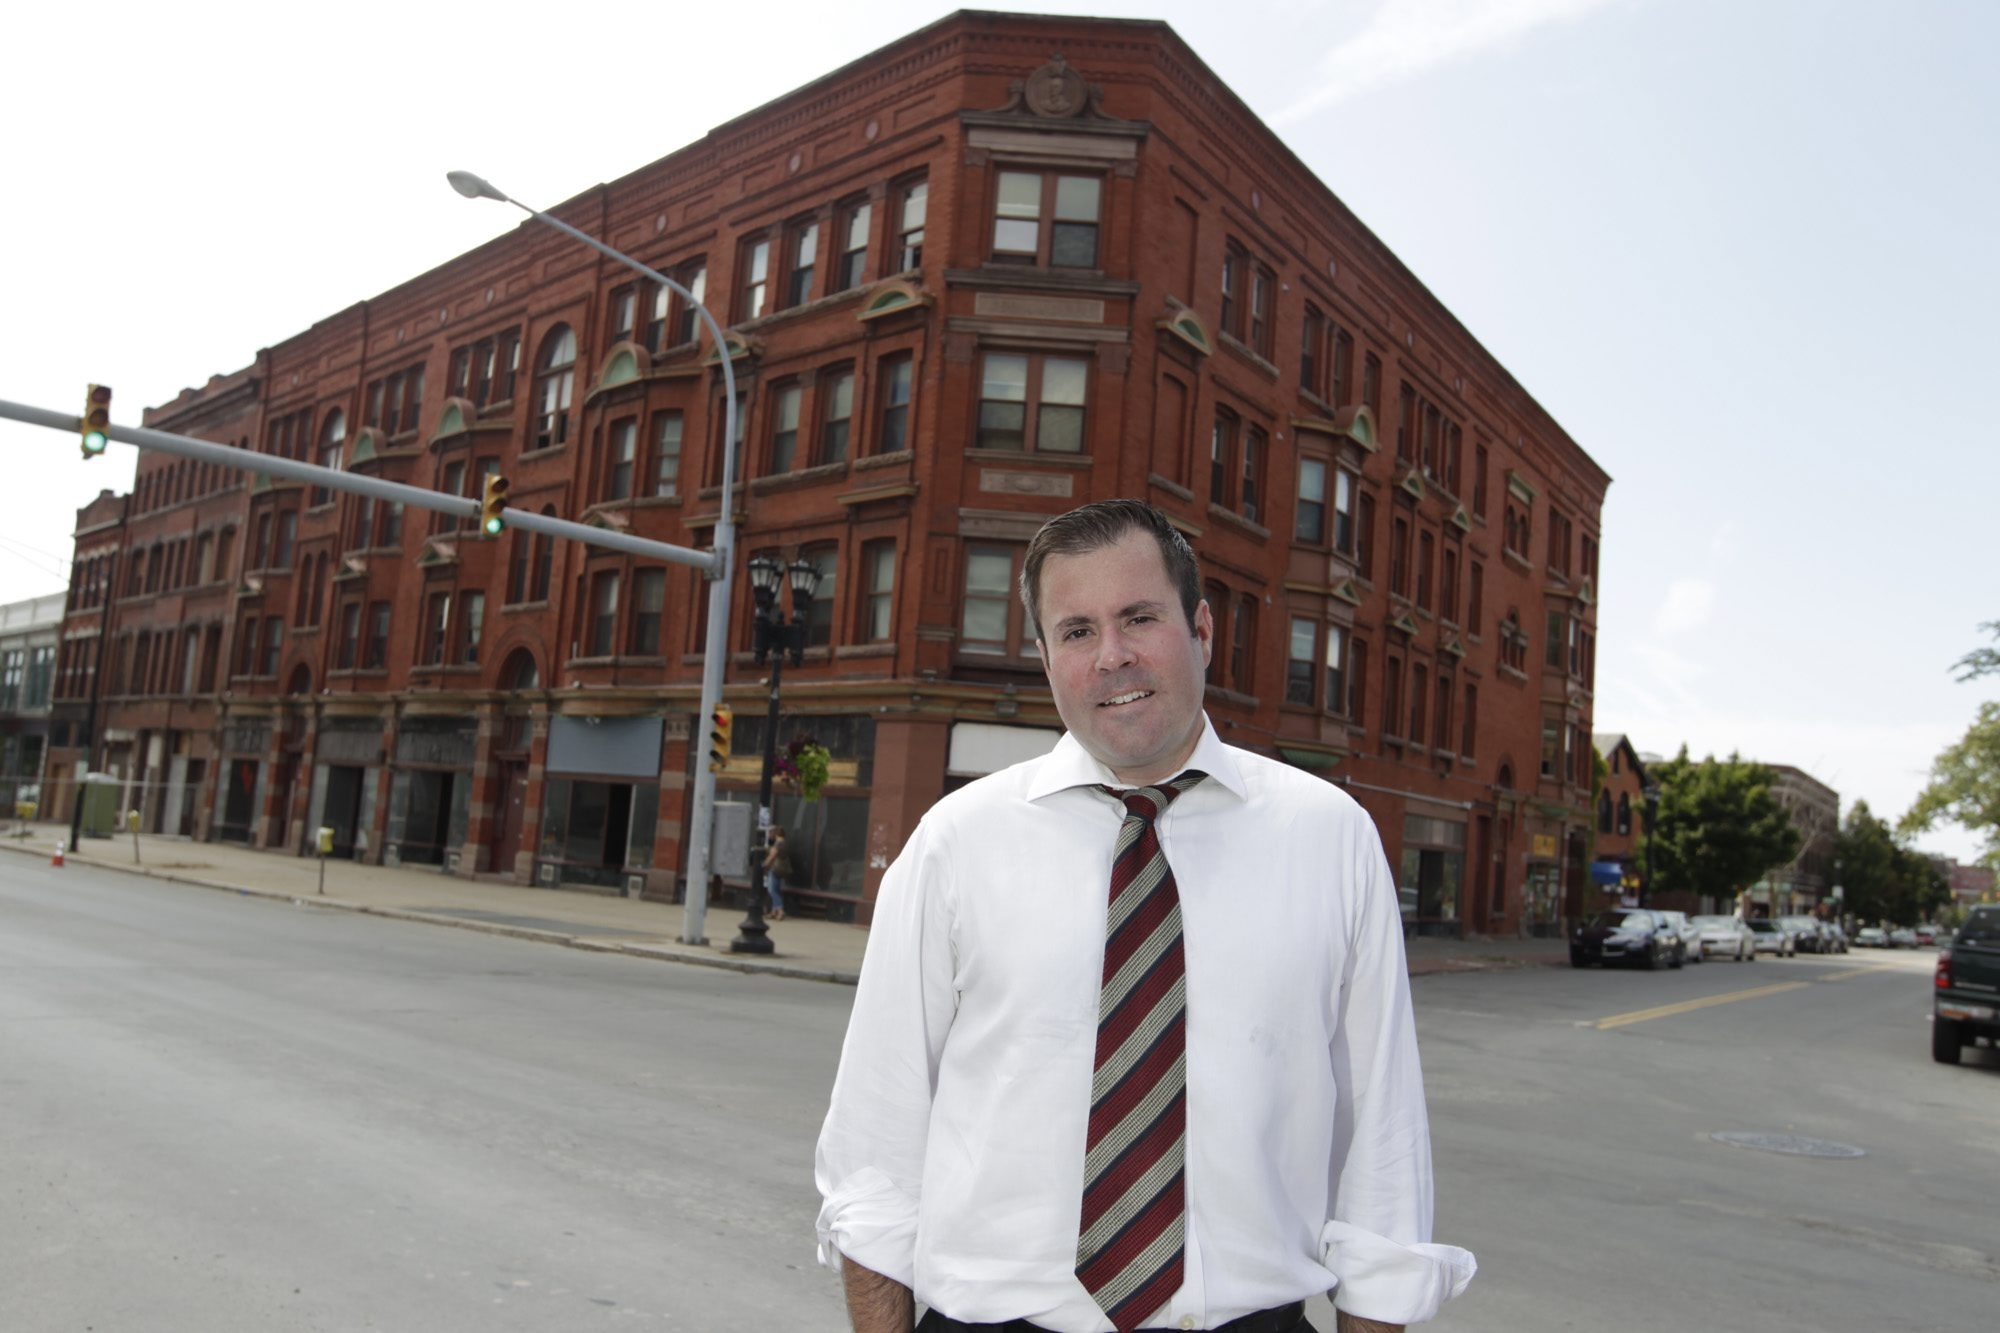 Aaron Siegel, along with Brett Fitzpatrick, is redeveloping the Red Jacket Building at Main and Allen streets in Buffalo.